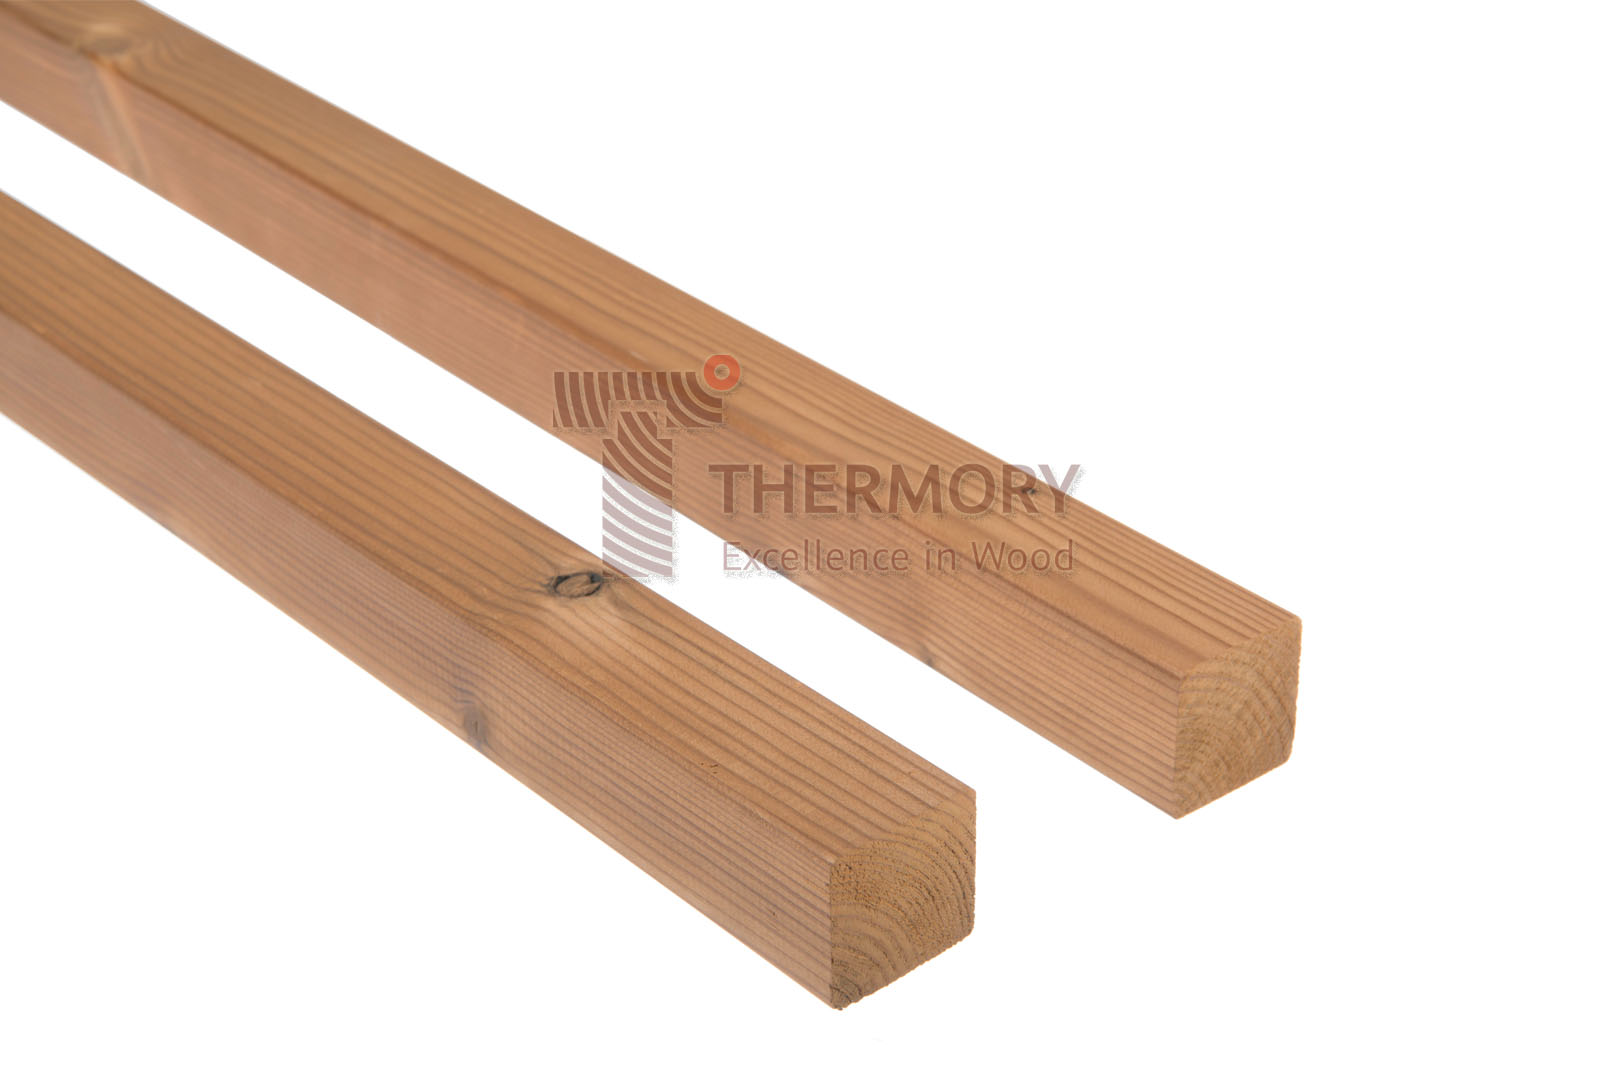 D4 42x42mm/68mm - The D4 profile is a s classic decking board which does not require any additional fitting systems.